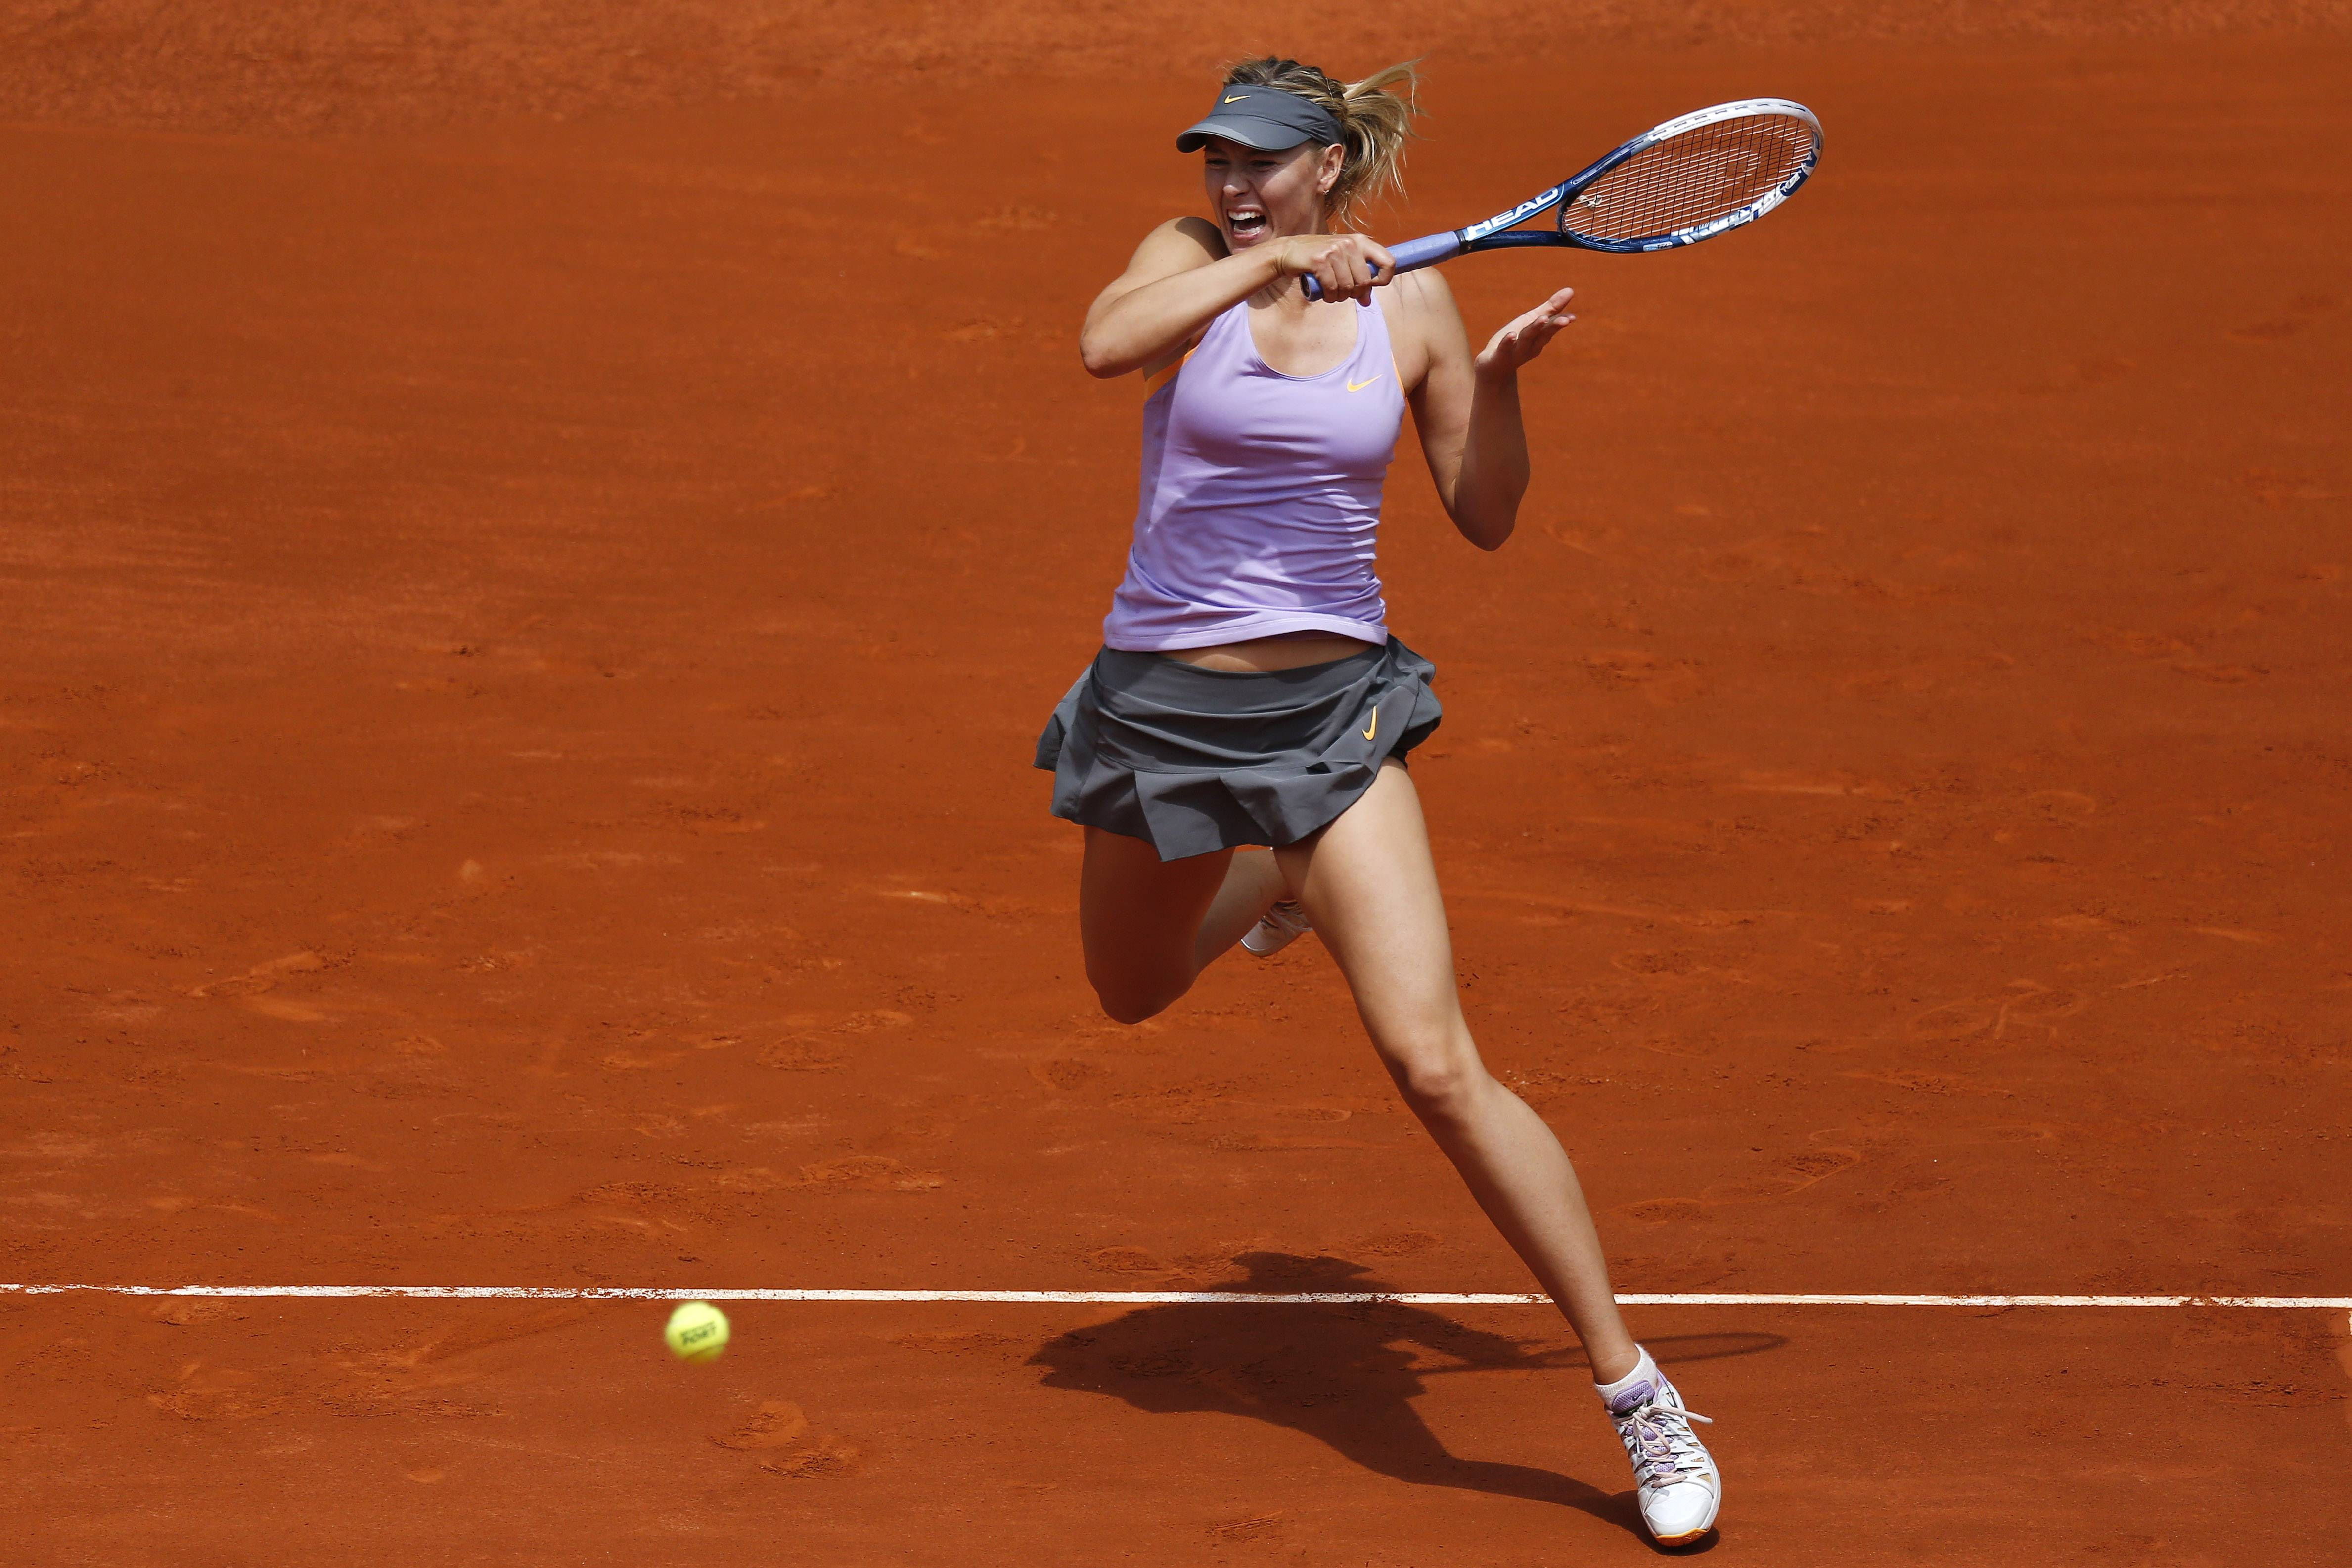 Maria Sharapova from Russia returns the ball during a Madrid Open tennis tournament match against Christina McHale from U.S., in Madrid, Spain, Tuesday, May 6, 2014.